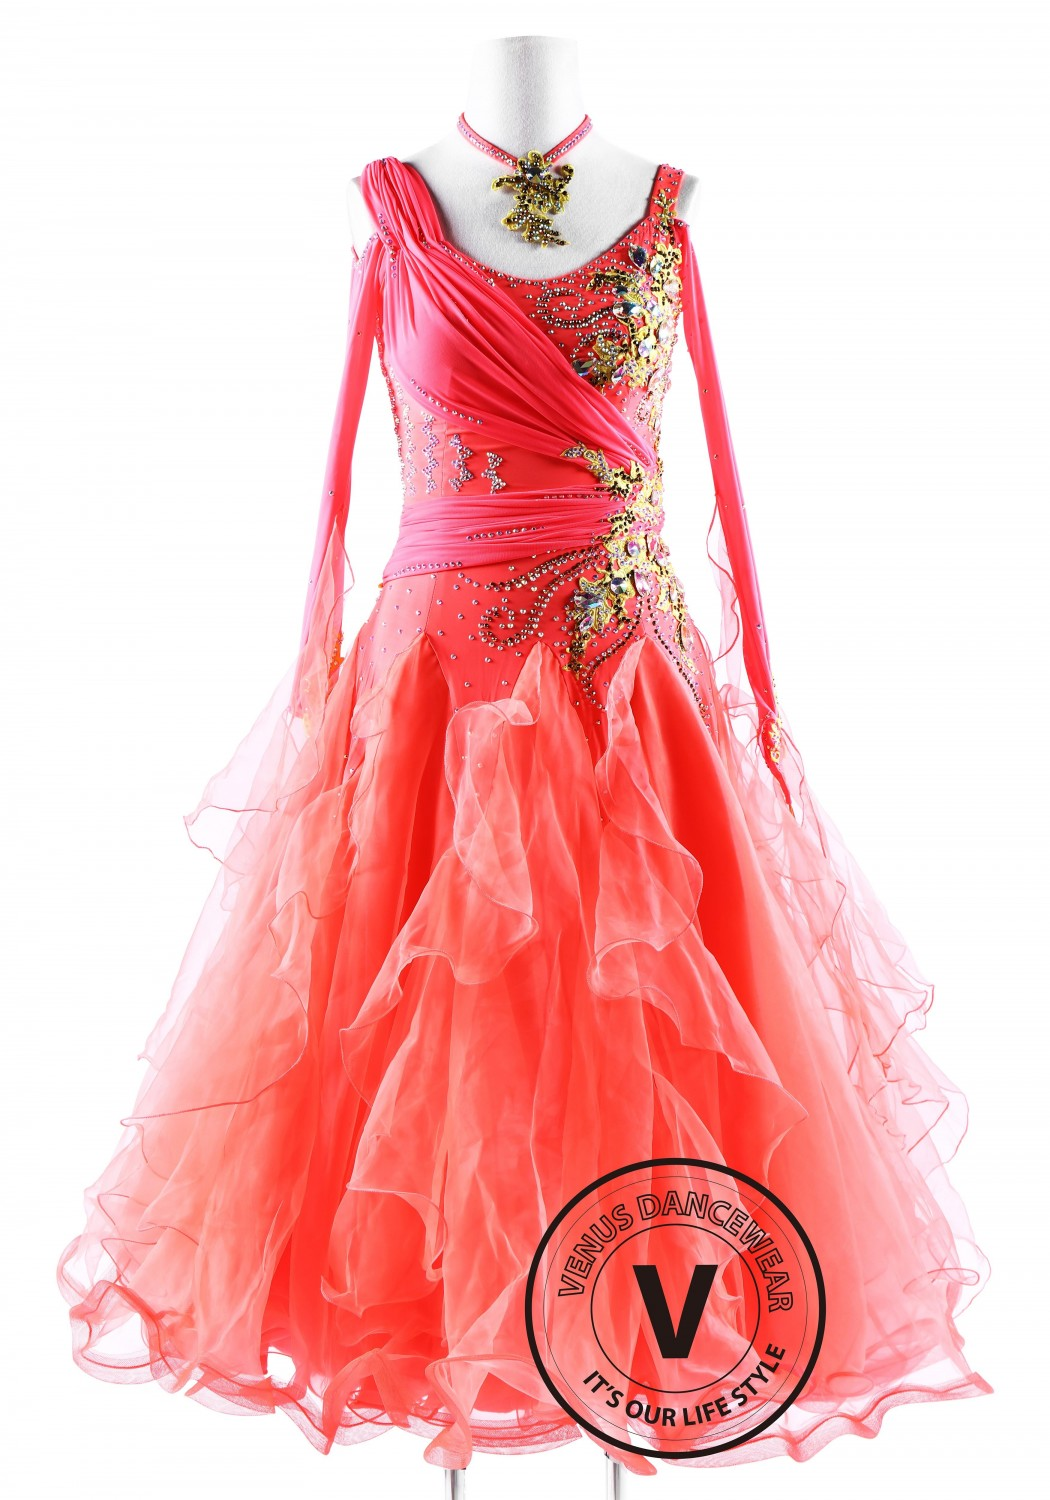 Watermelon Red Ballroom Smooth Competition Dance Dress